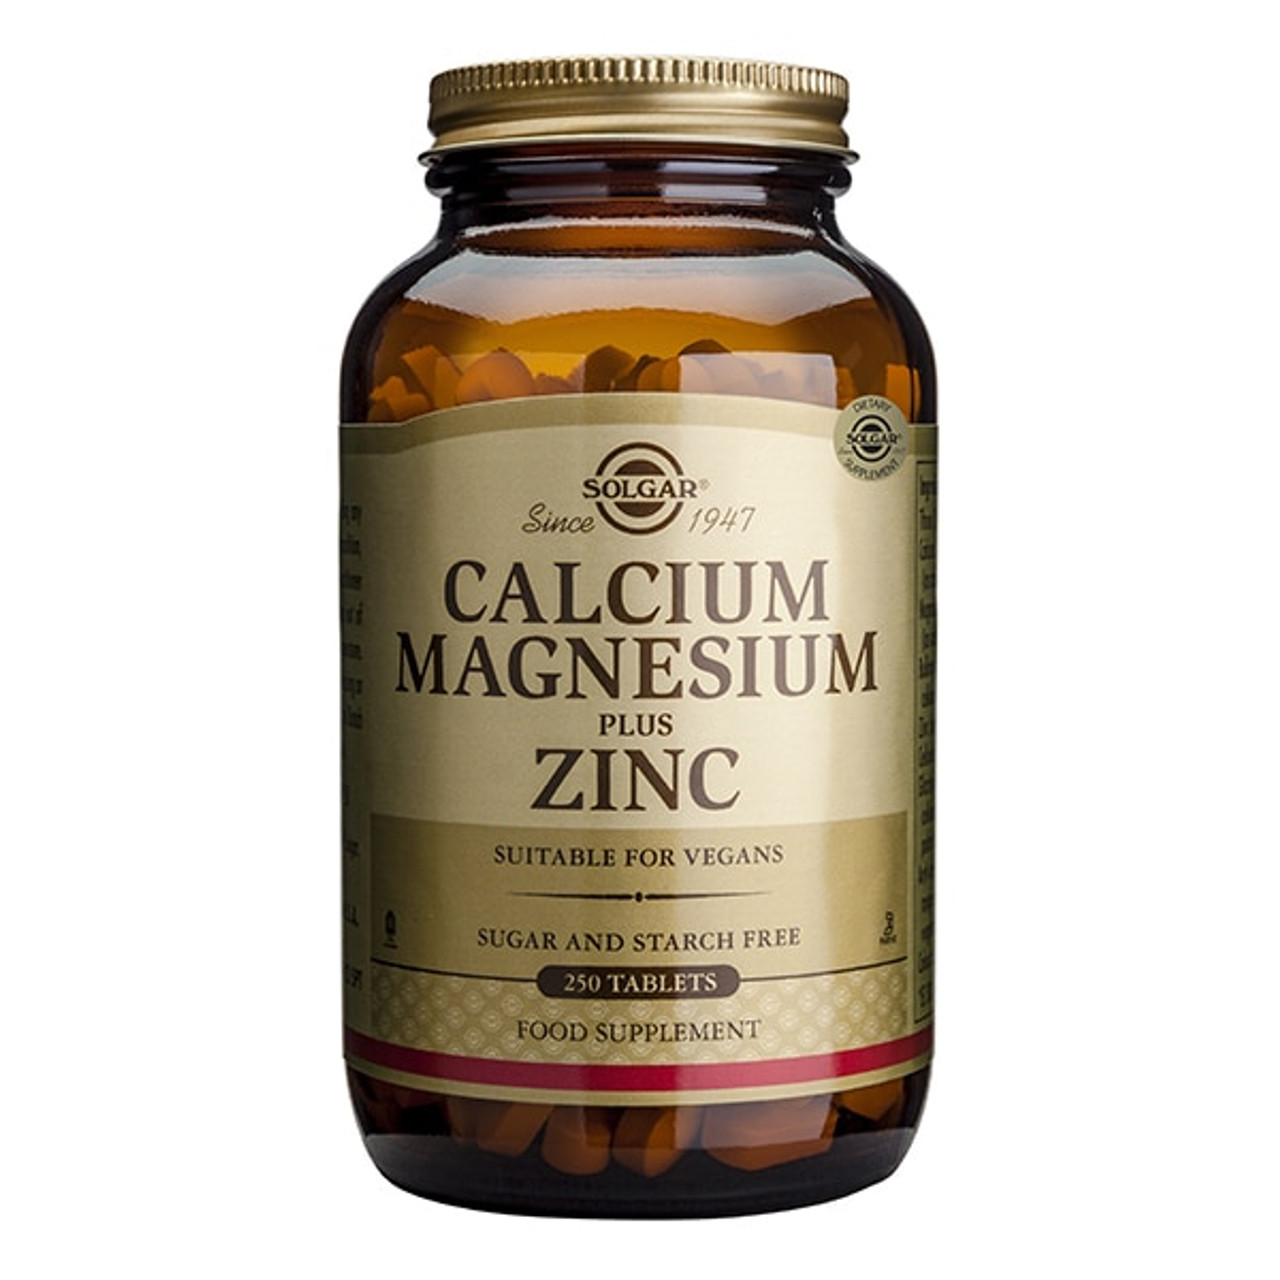 Calcium Magnesium Plus Zinc 250 Tablets NZ